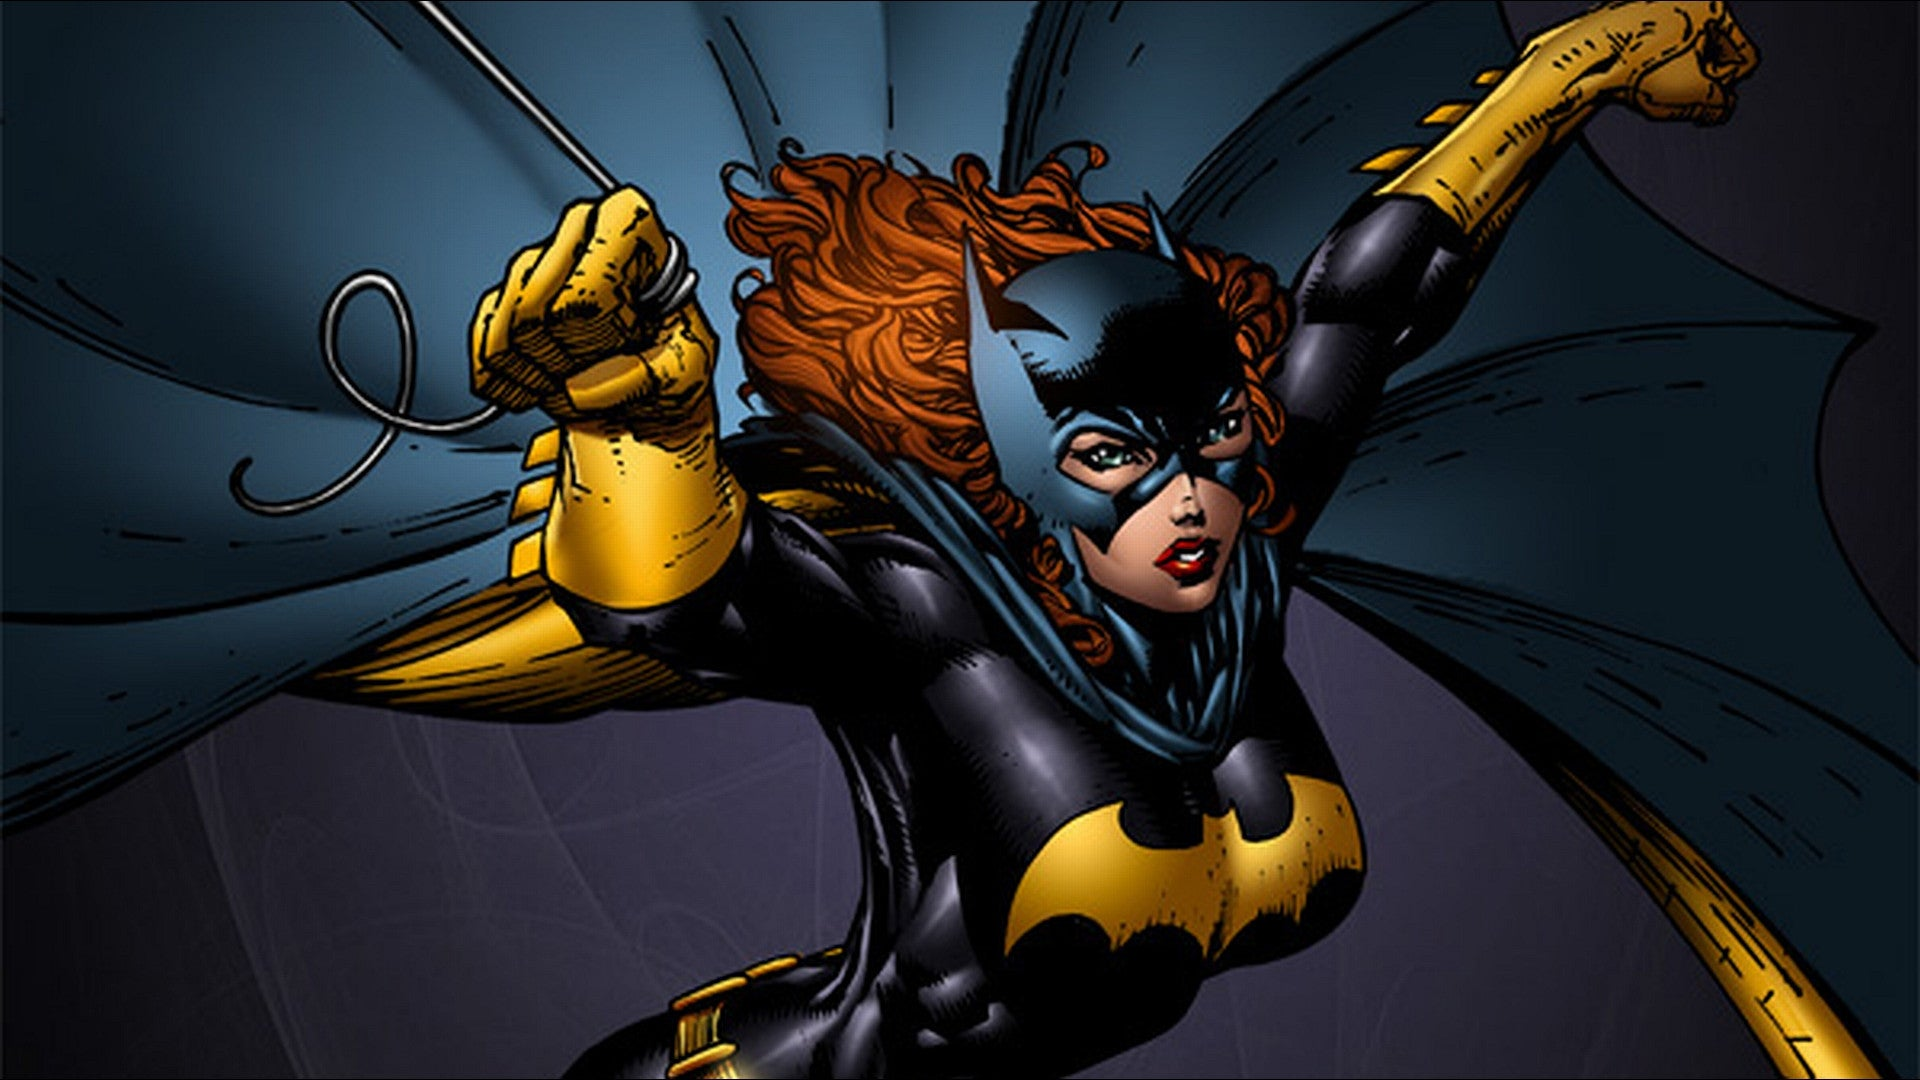 Batgirl and Female Superheroes in Comics